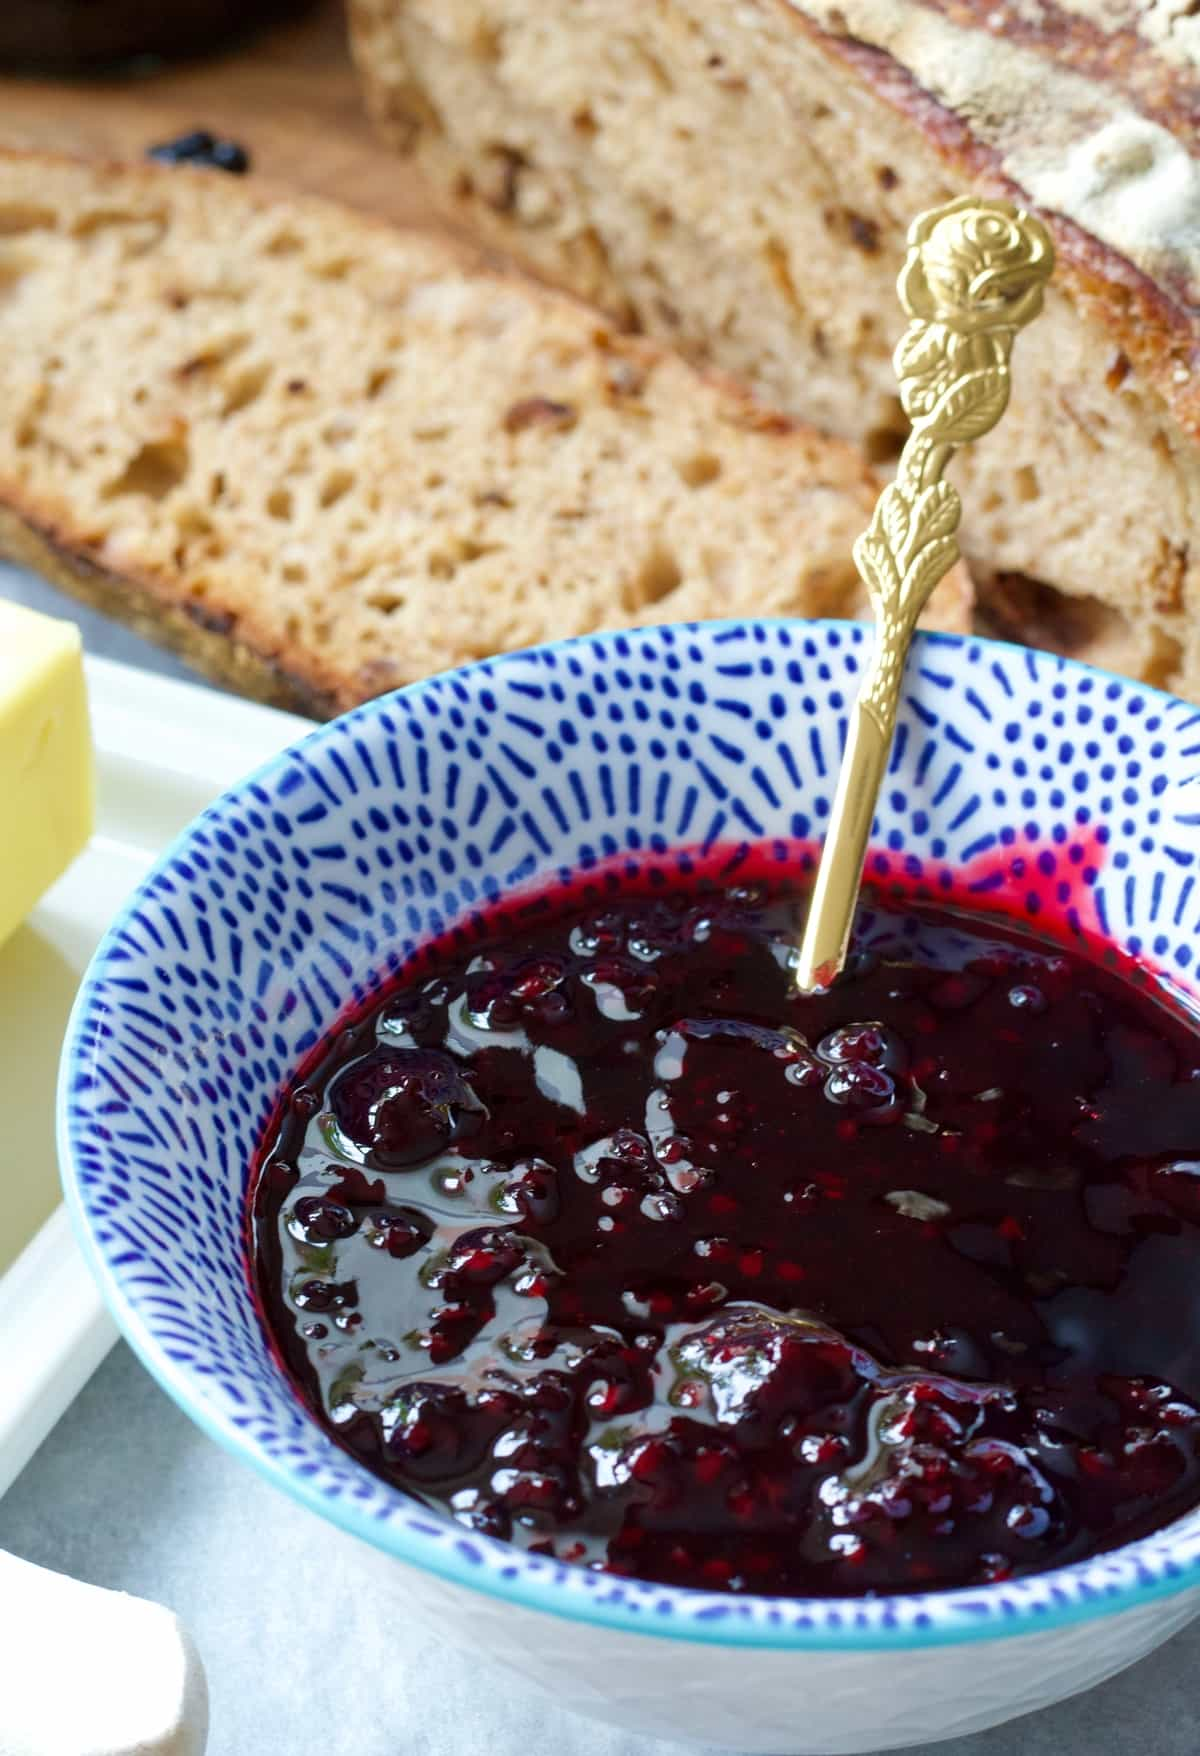 Bowl of blackberry jam with spoon in it.